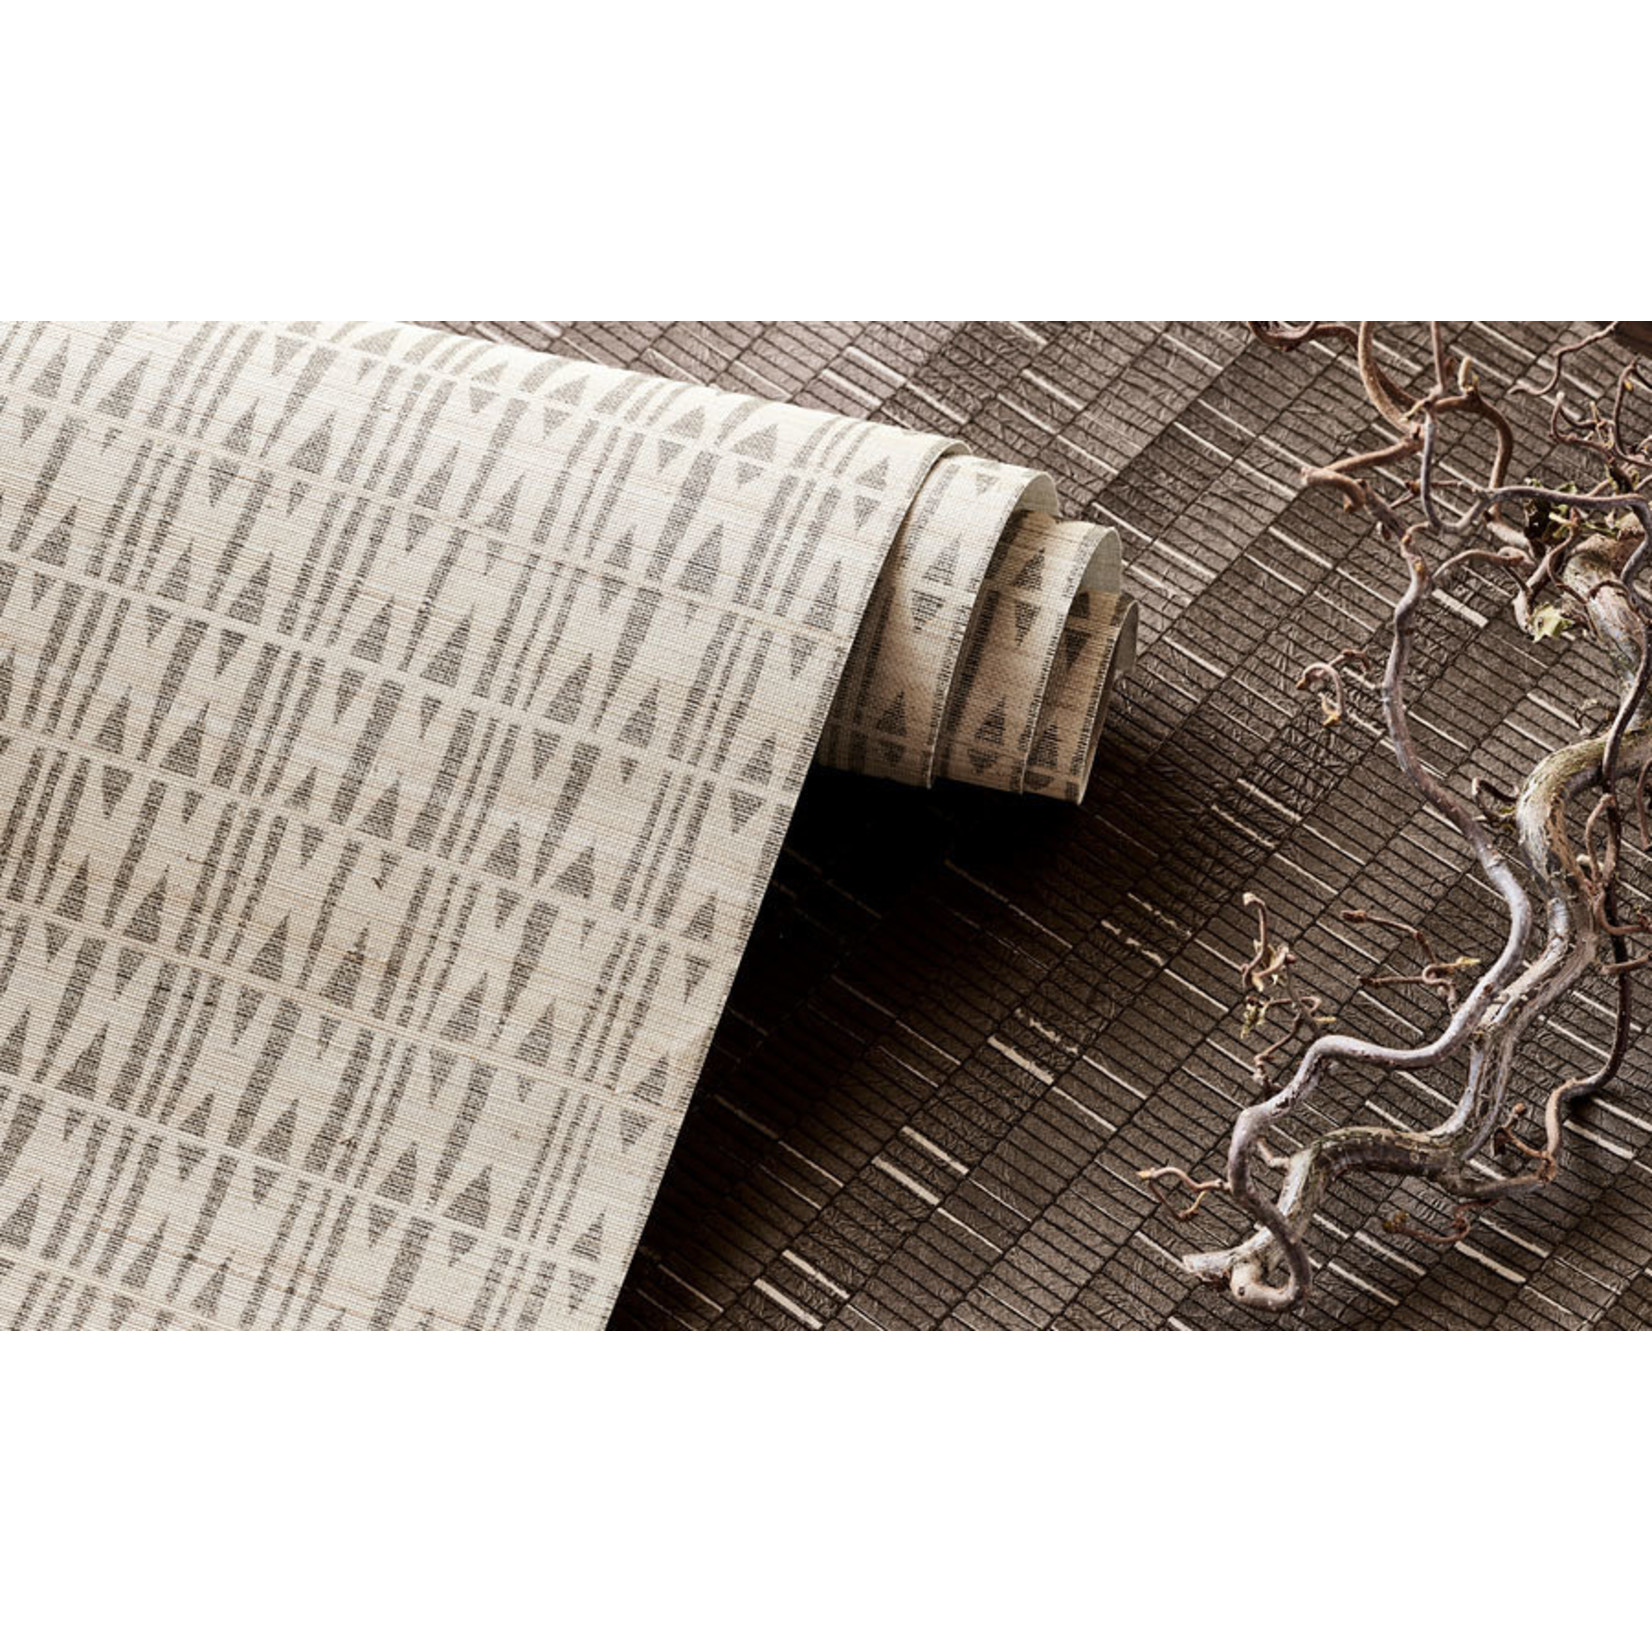 Mark Alexander Collage Handcrafted Wallcoverings   Tipi Powder